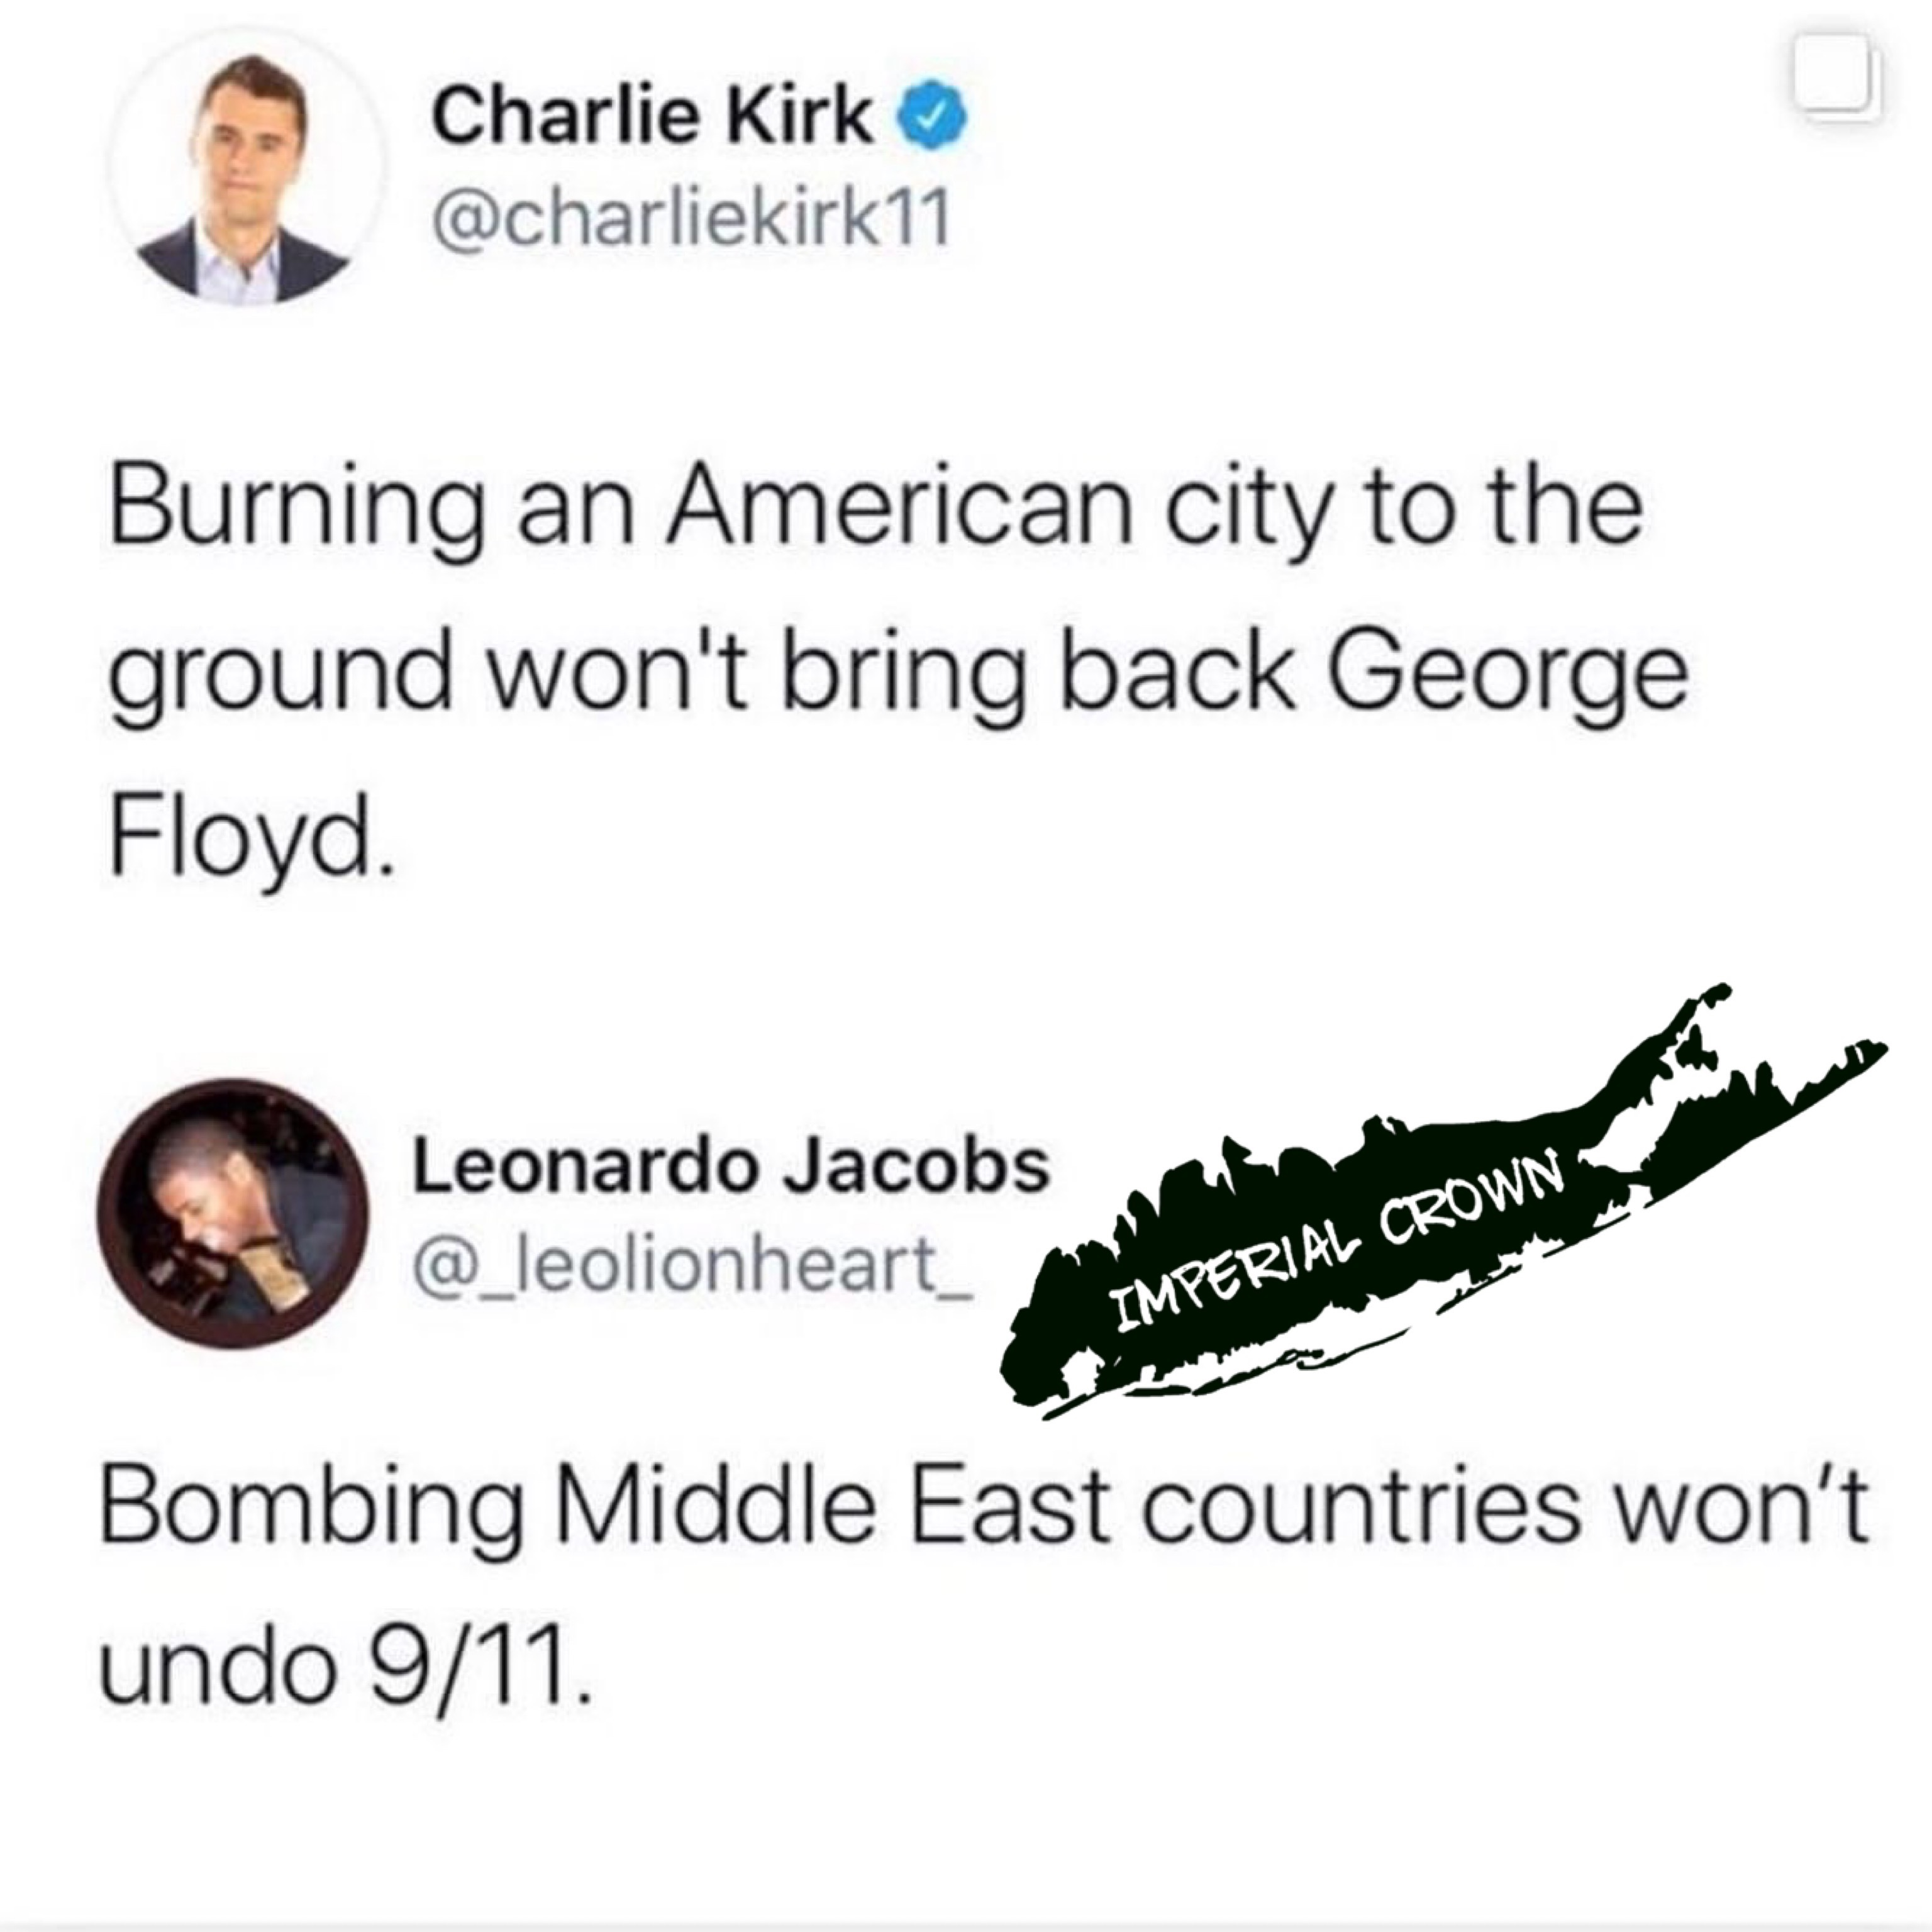 Burning an American city to the ground won't bring back George Floyd